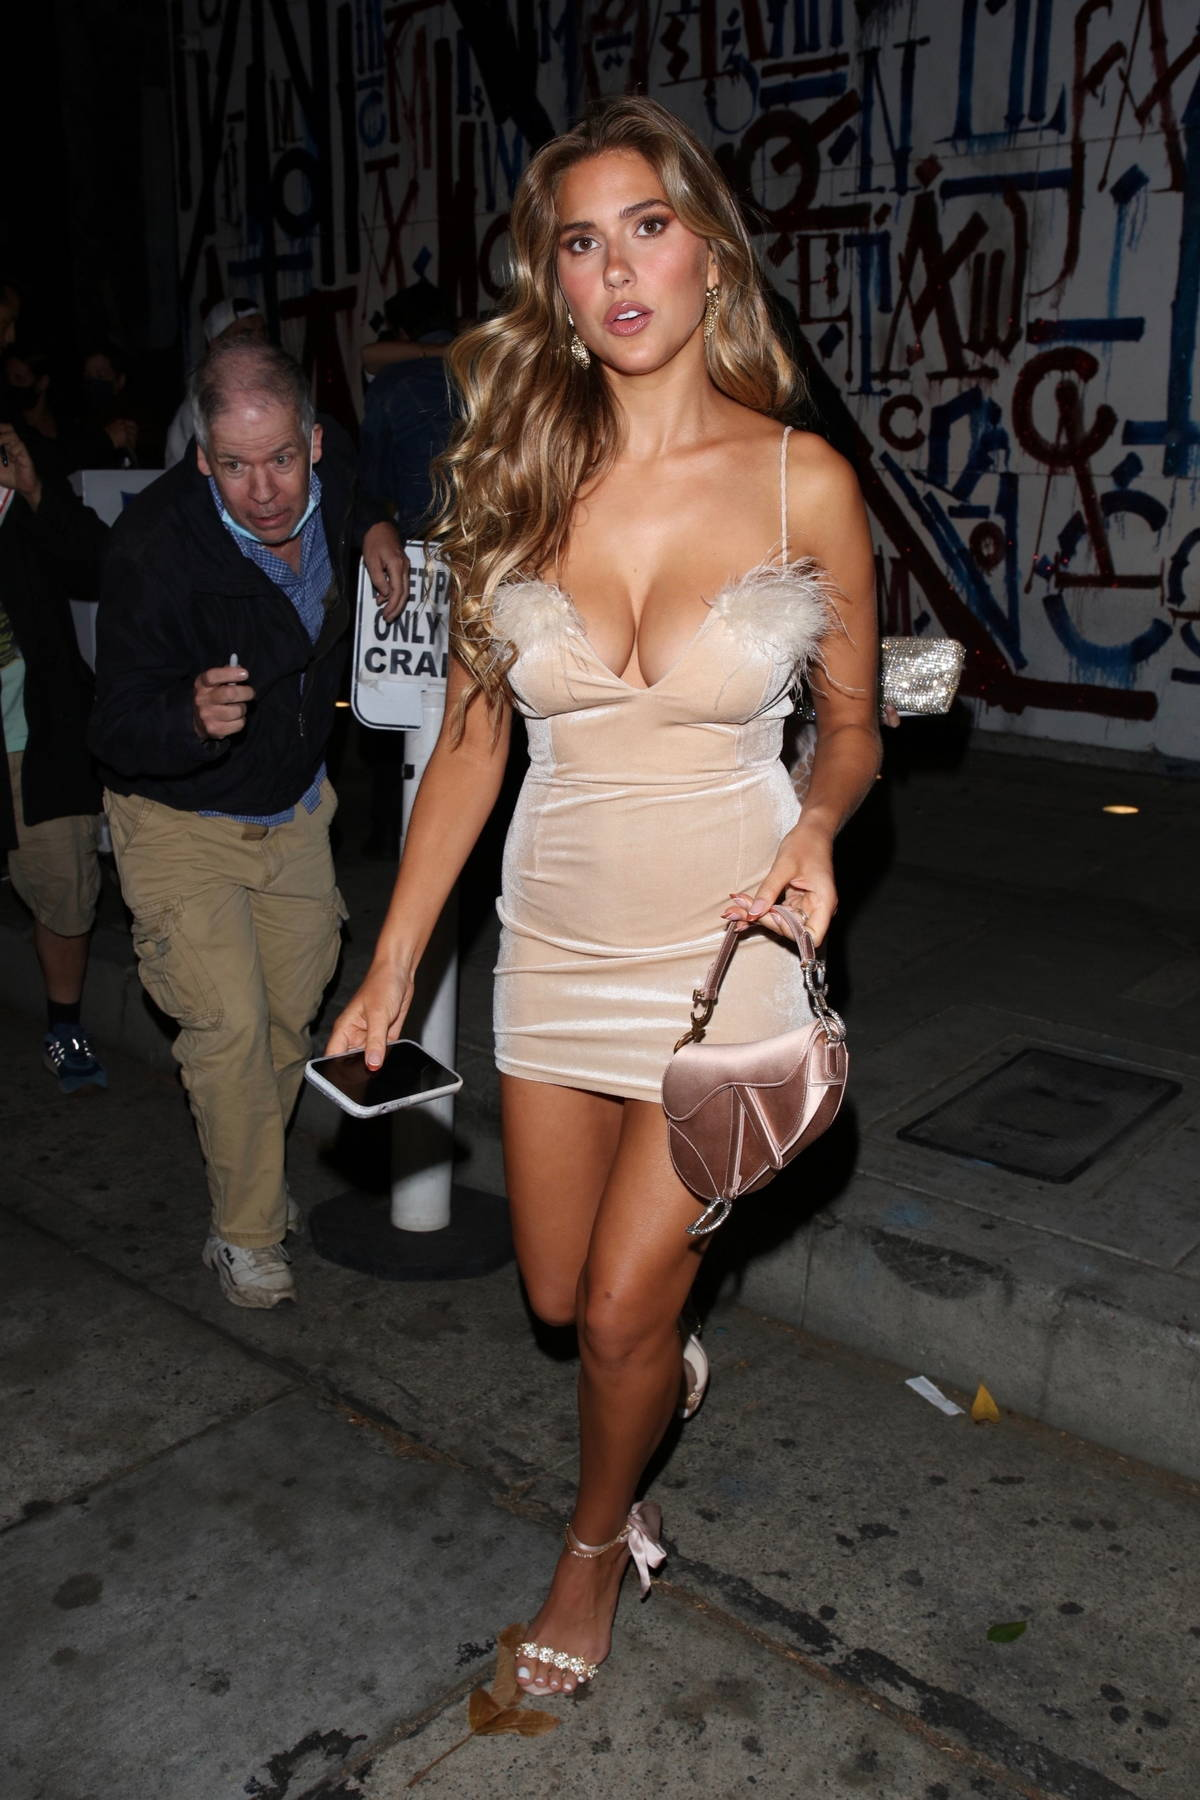 Kara Del Toro flaunts her curves in a plunging mini dress while out for dinner at Craig's in West Hollywood, California